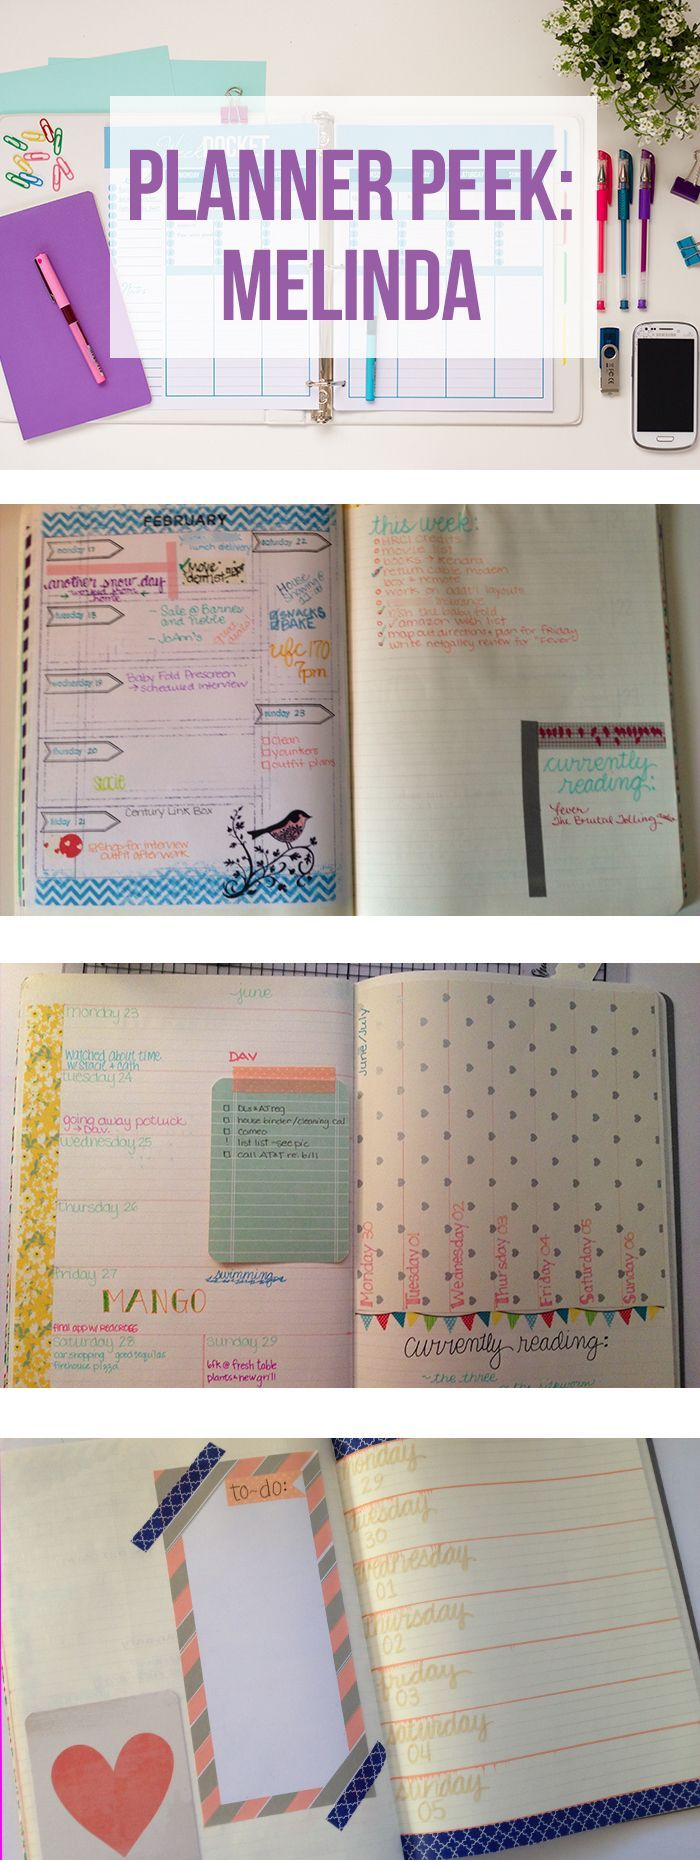 Melinda's DIY Planner from an XL moleskine. If you like this planner setup you should check out this post: http://www.designisyay.com/kikki-k-personal-planner-setup/